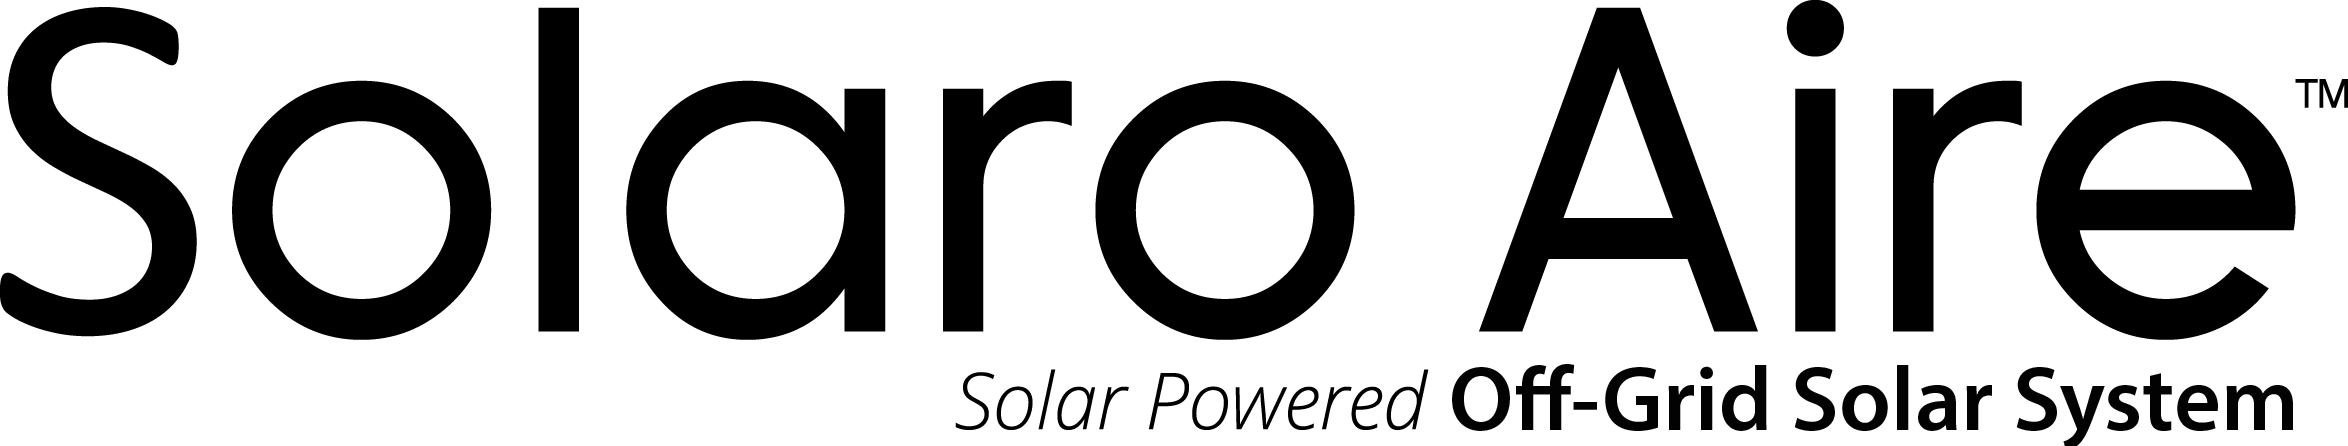 Solaro Energy, Off Grid Solar Systems. Solaro Energy offers a variety of pre-configured off grid solar systems to fit your needs!